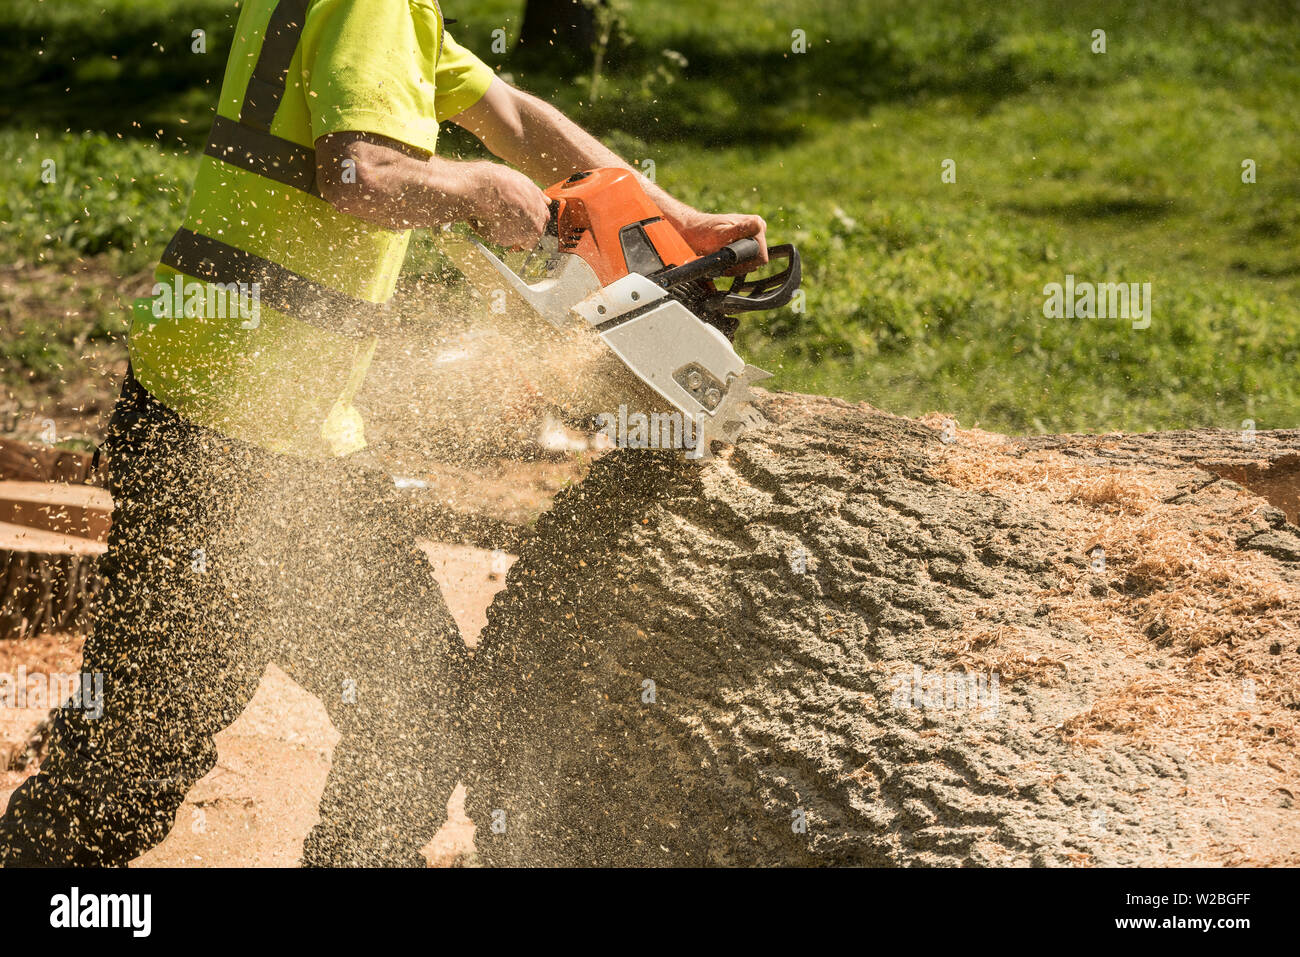 A man in full PPE using a chainsaw to cutting up a tree trunk. - Stock Image